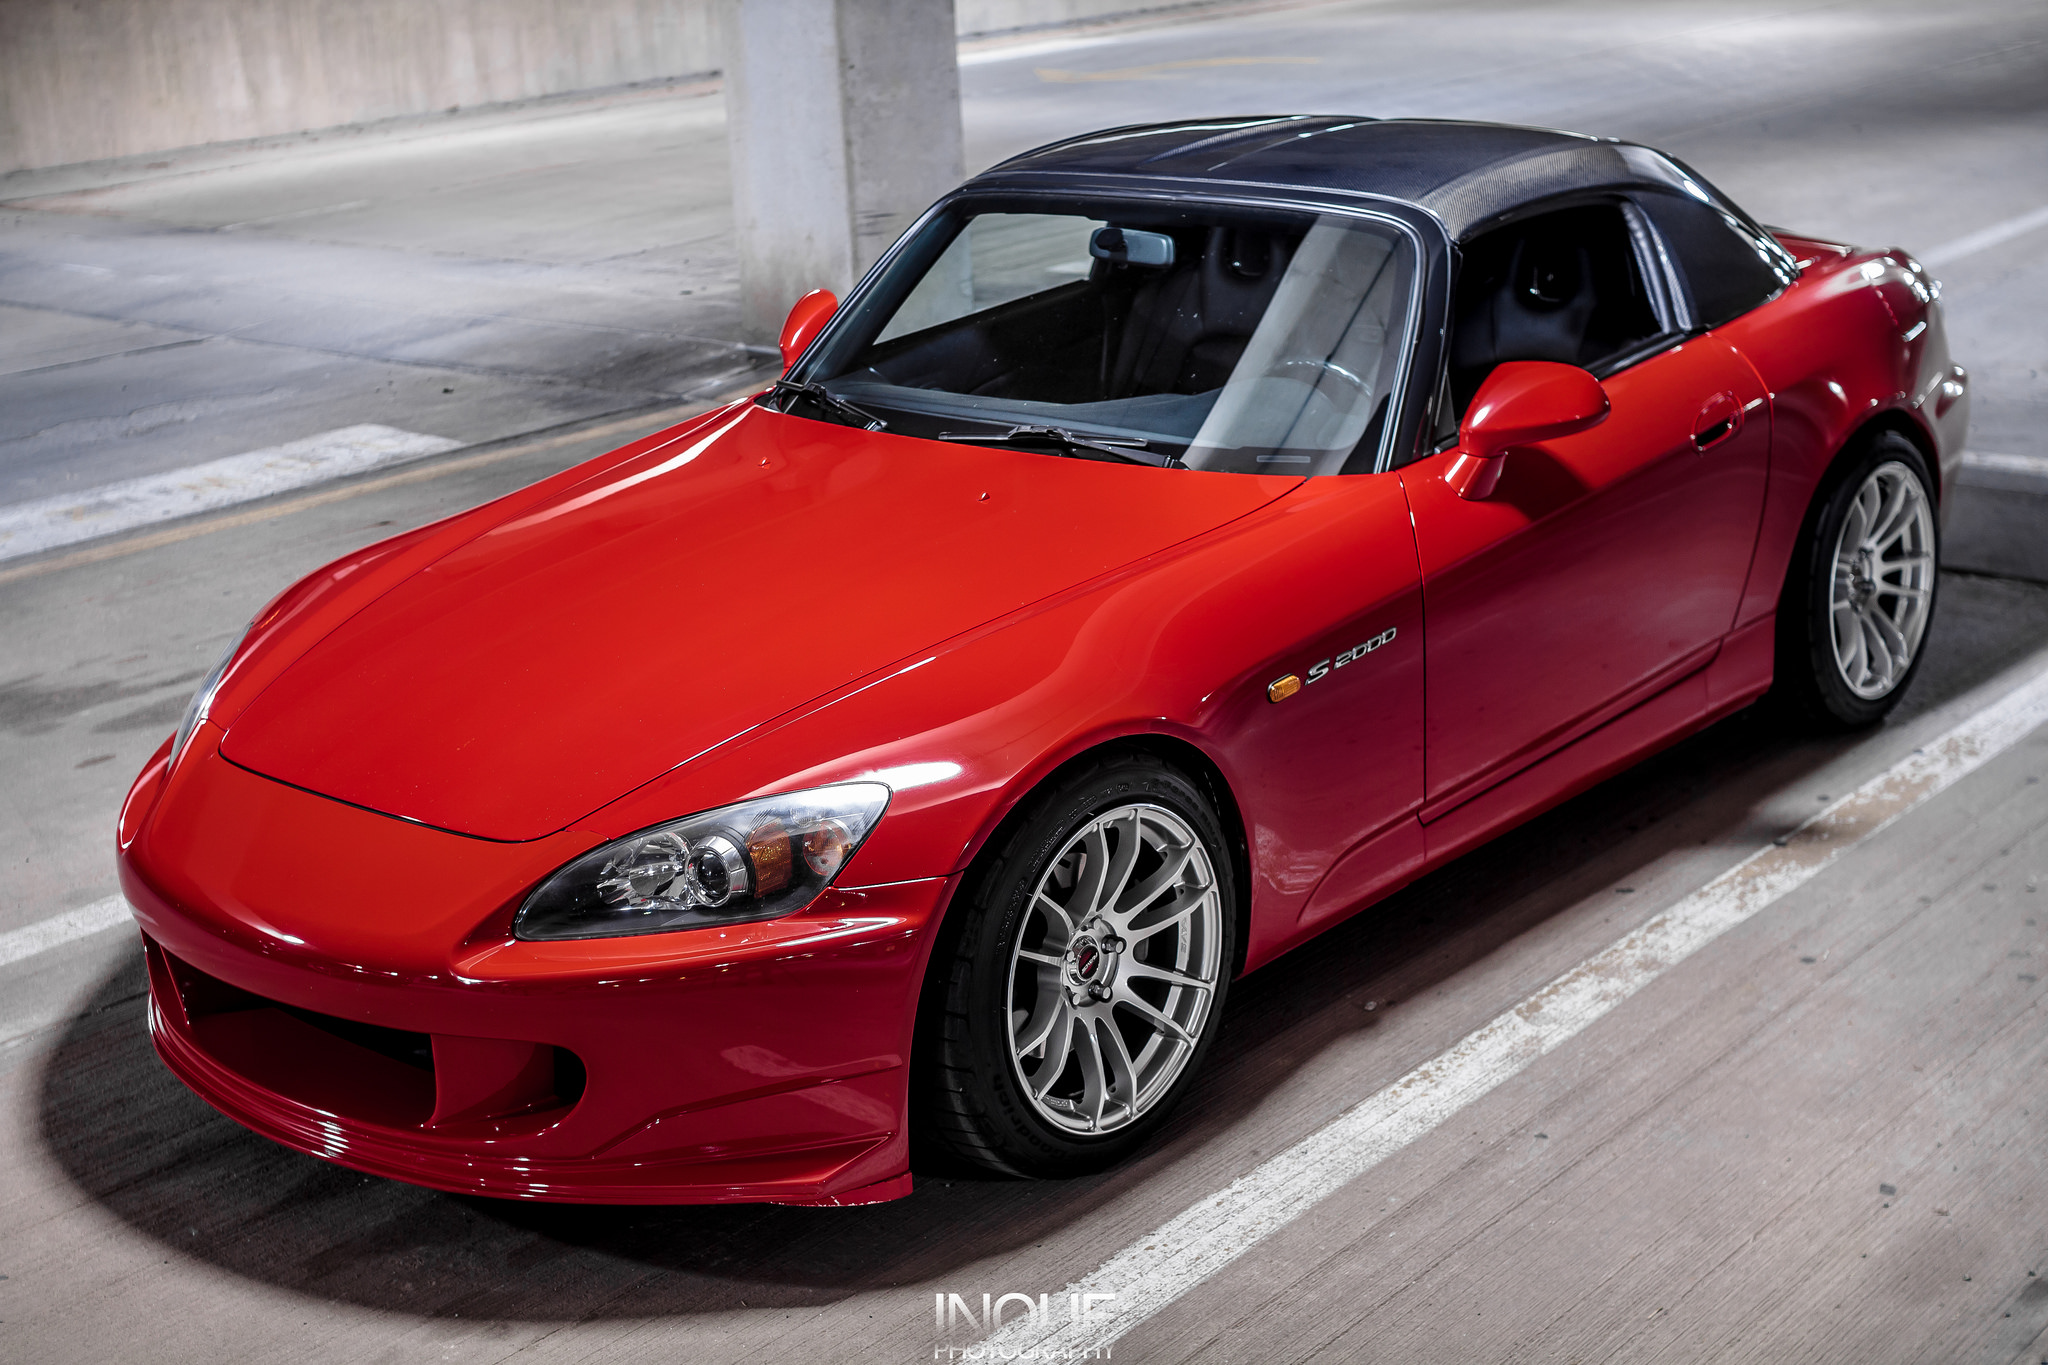 2005 Honda S2000 – Garage Quinn Motors